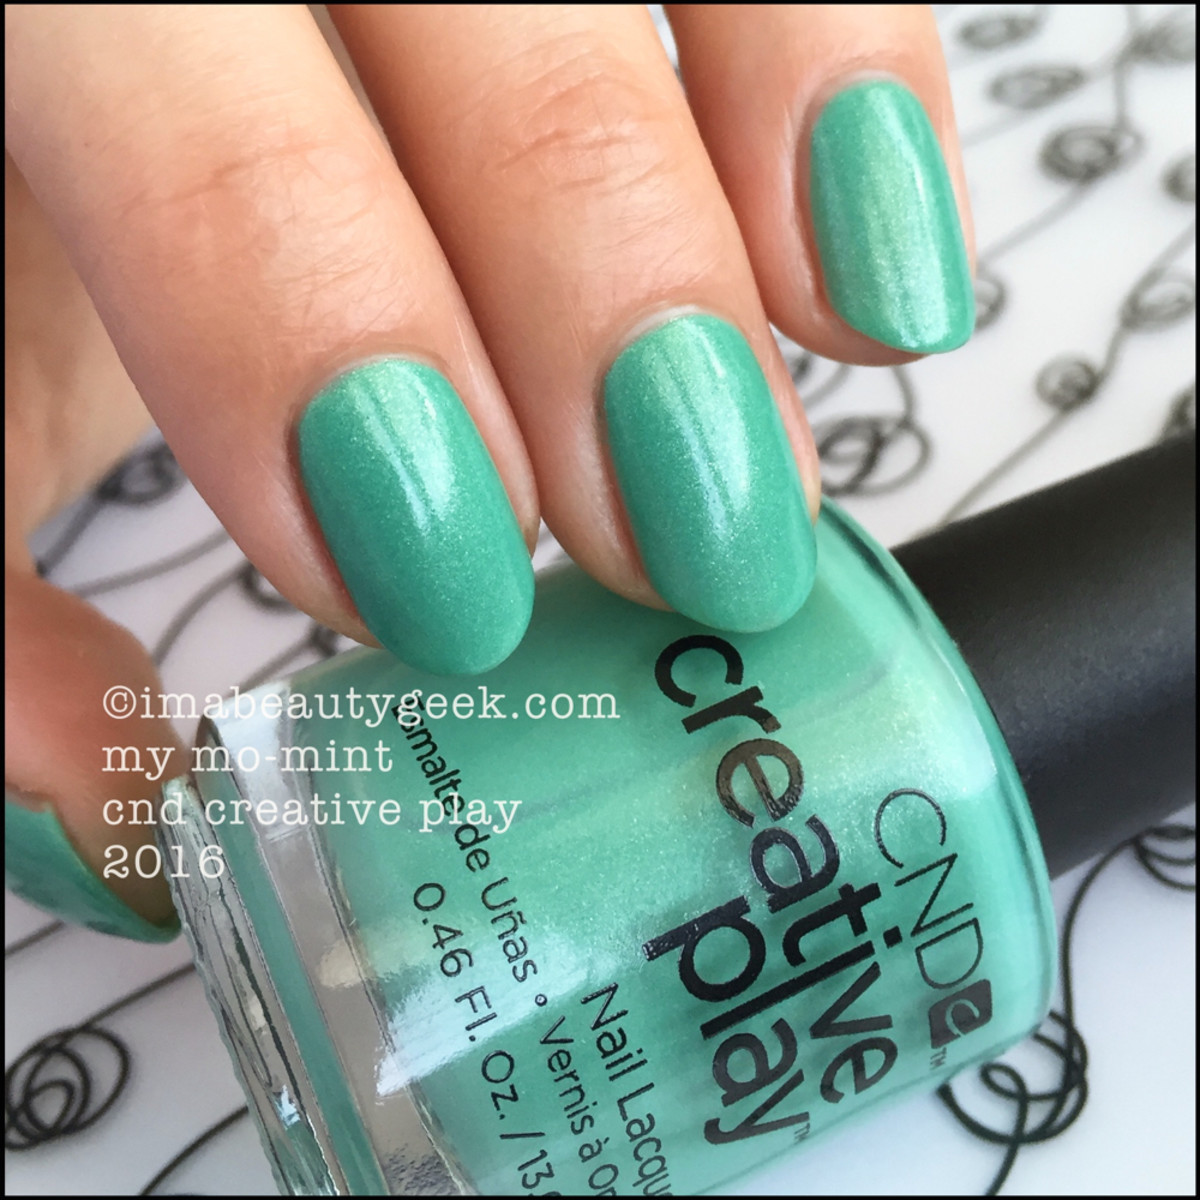 CND Creative Play My MoMint_CND Creative Play Nail Lacquer 2016